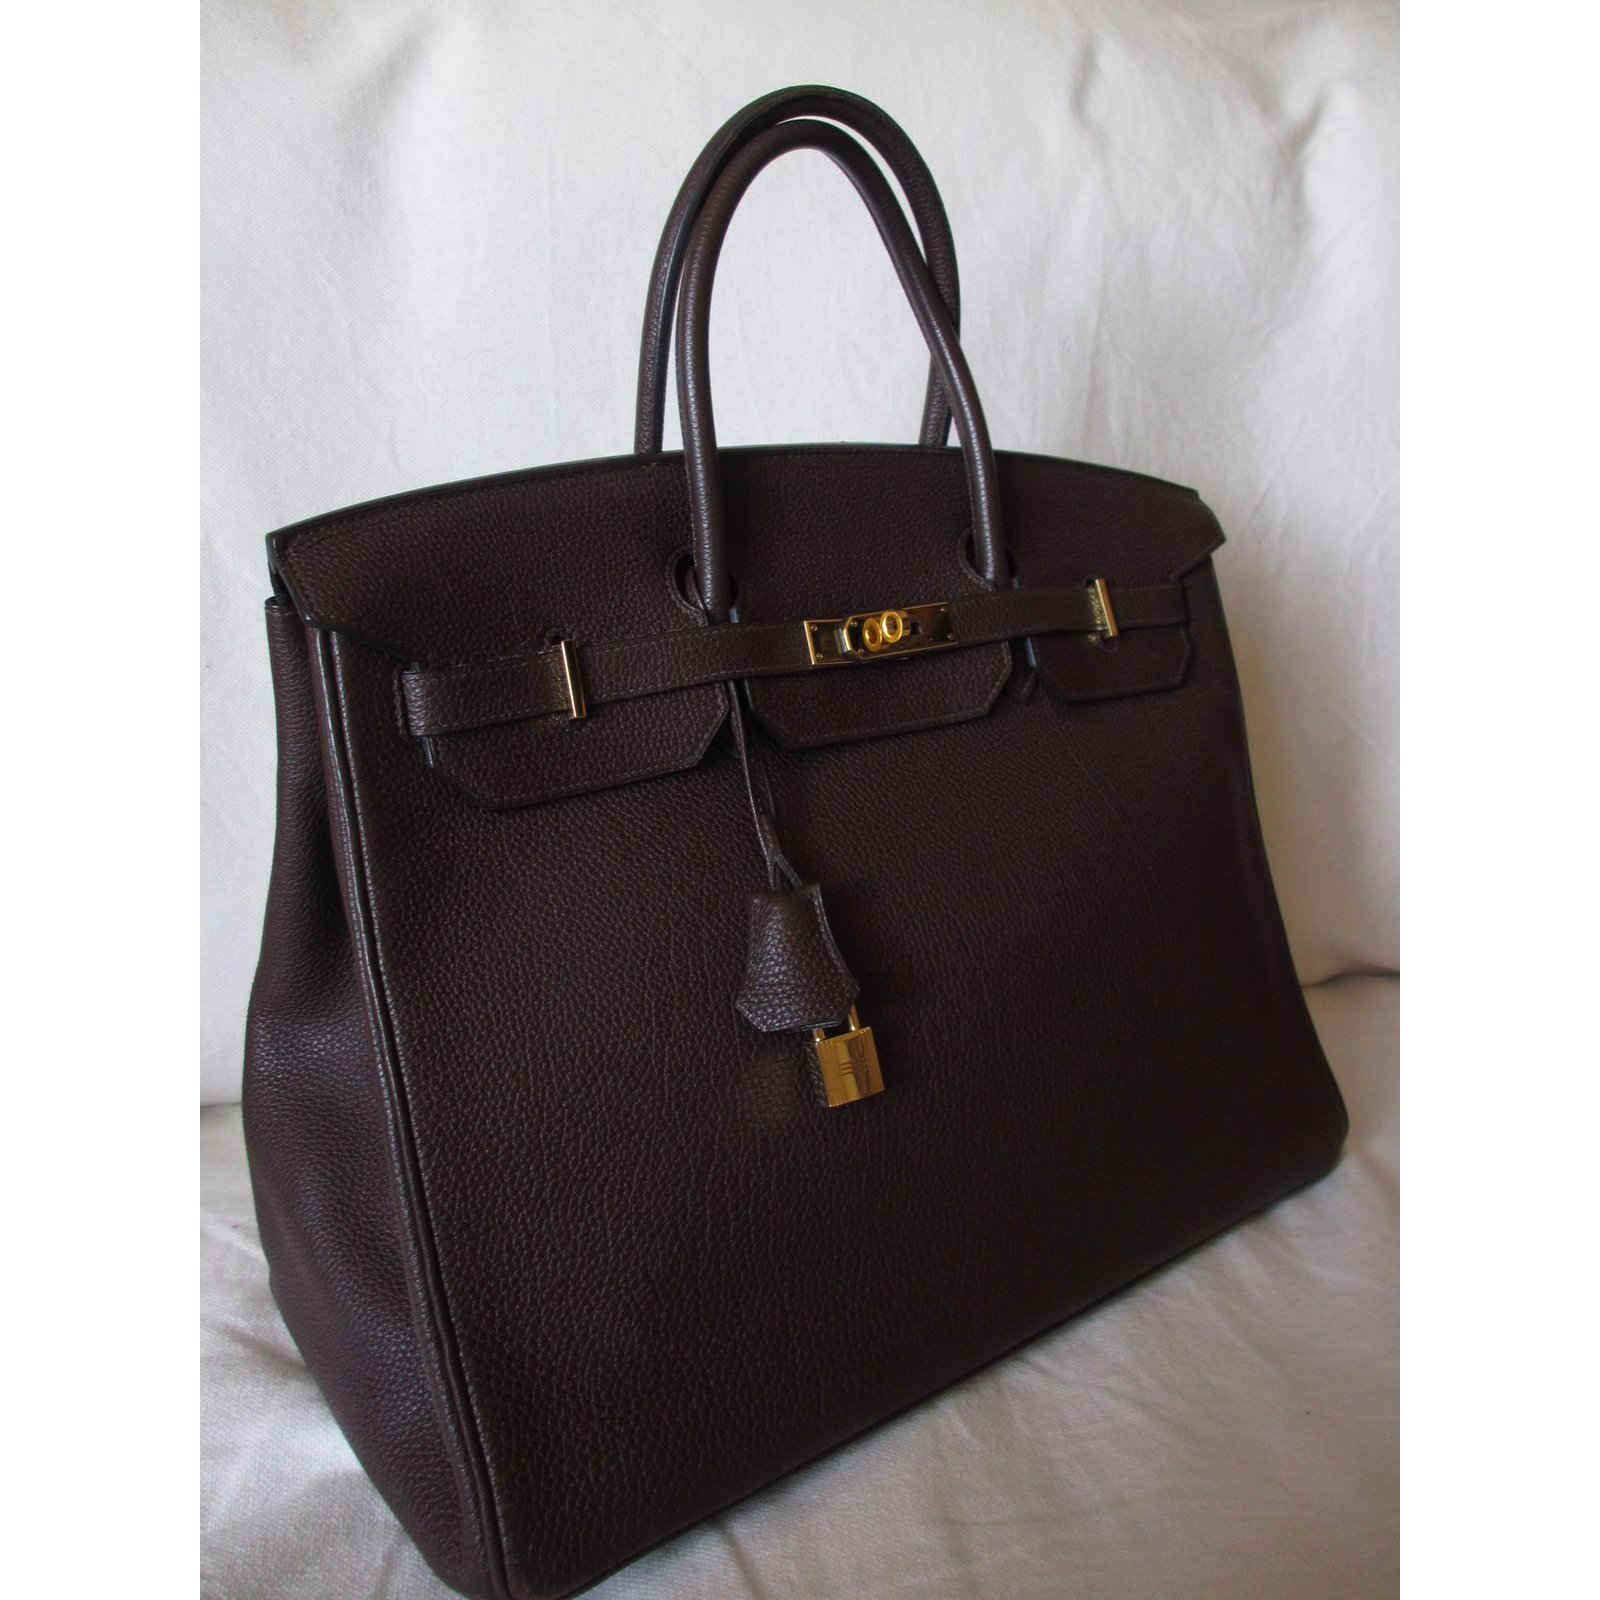 819538a752a ... hot hermès birkin 40 veau togo handbags leather dark brown ref.39542  joli closet b61d6